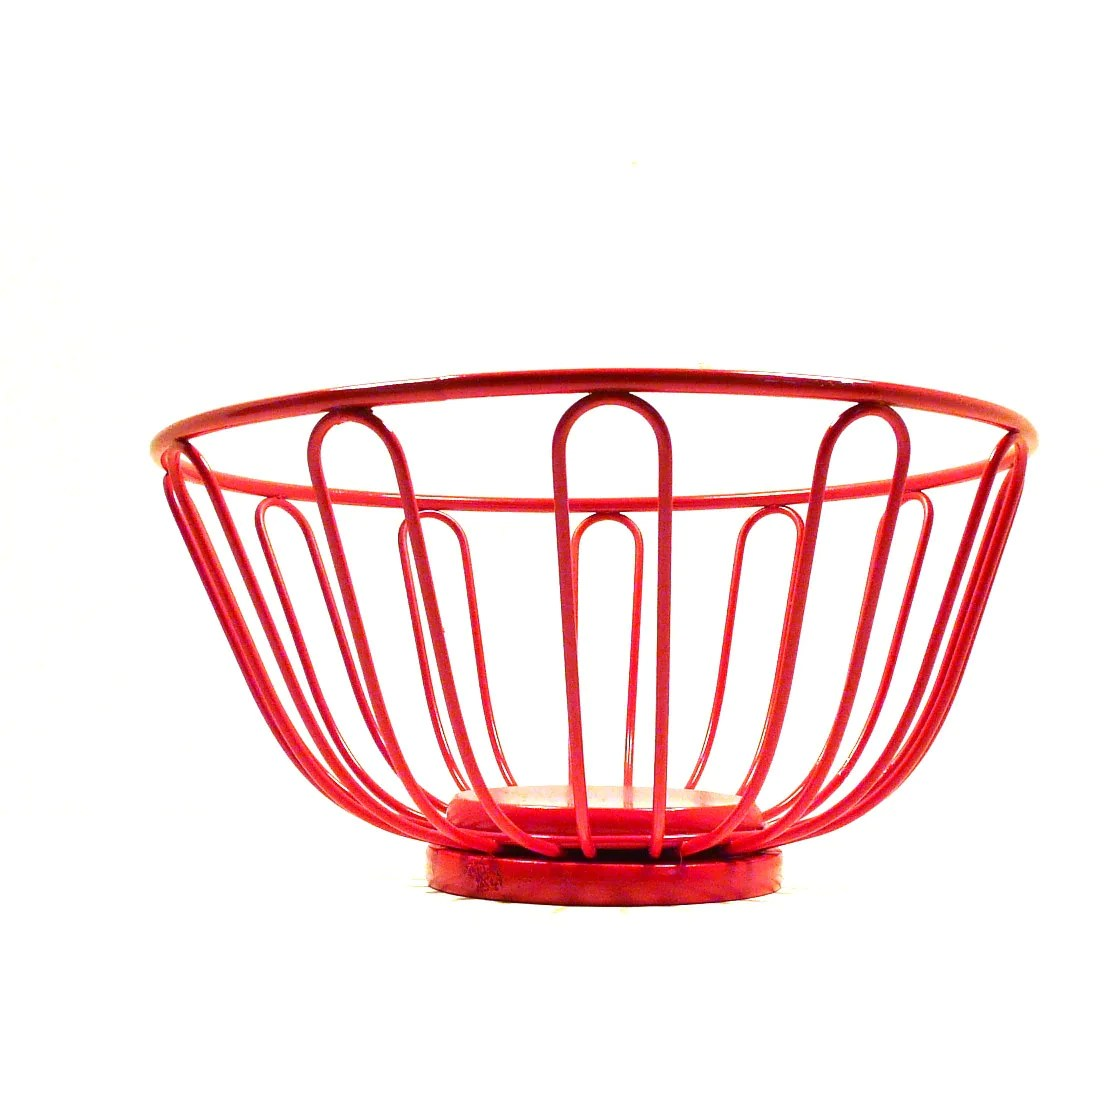 Metal Fruit Bowl Red Wire Basket Retro Decor Kitchen Fruit Bowl Baskets By